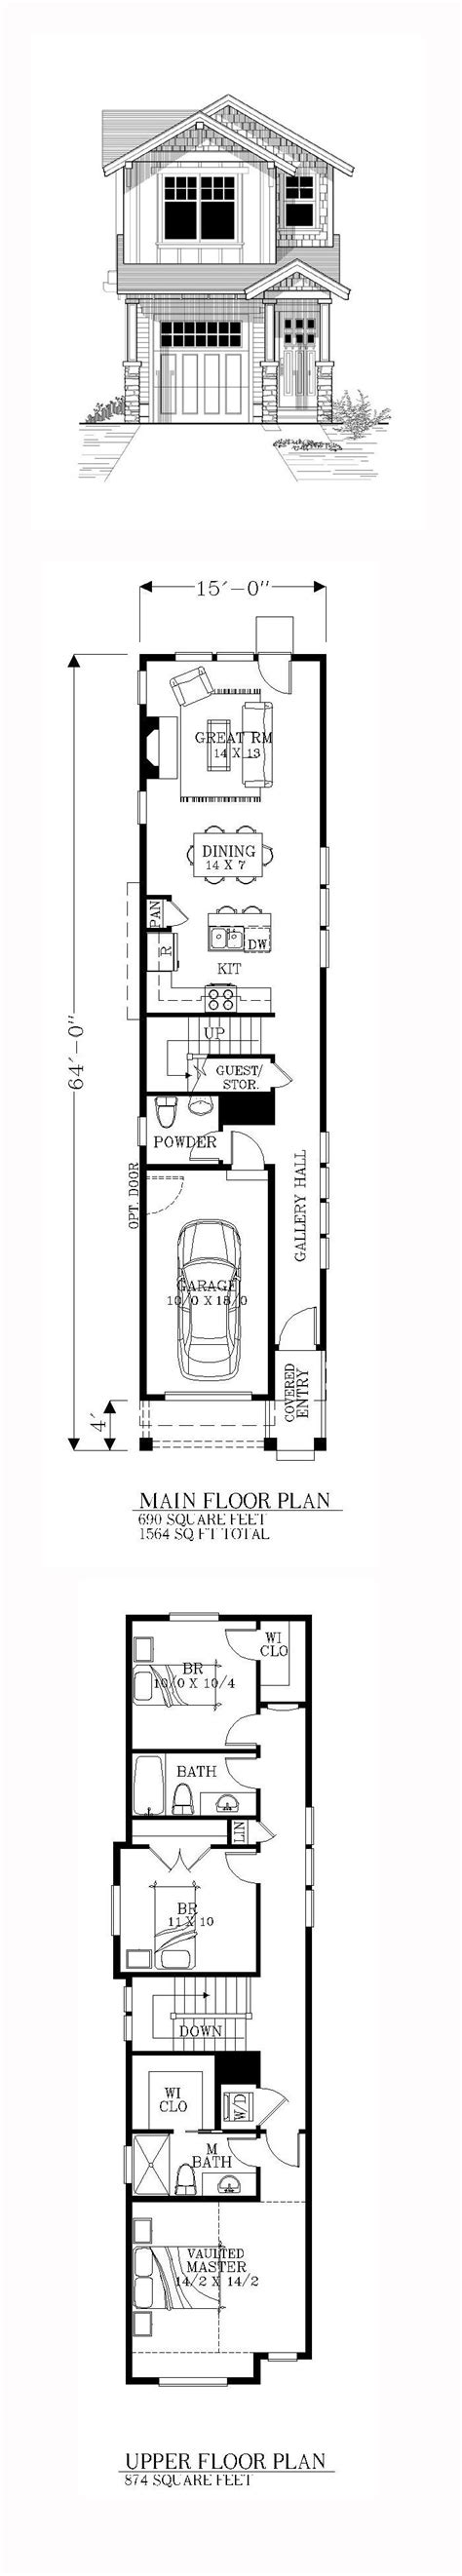 narrow small house plans 17 best ideas about narrow bedroom on pinterest narrow bedroom ideas small space